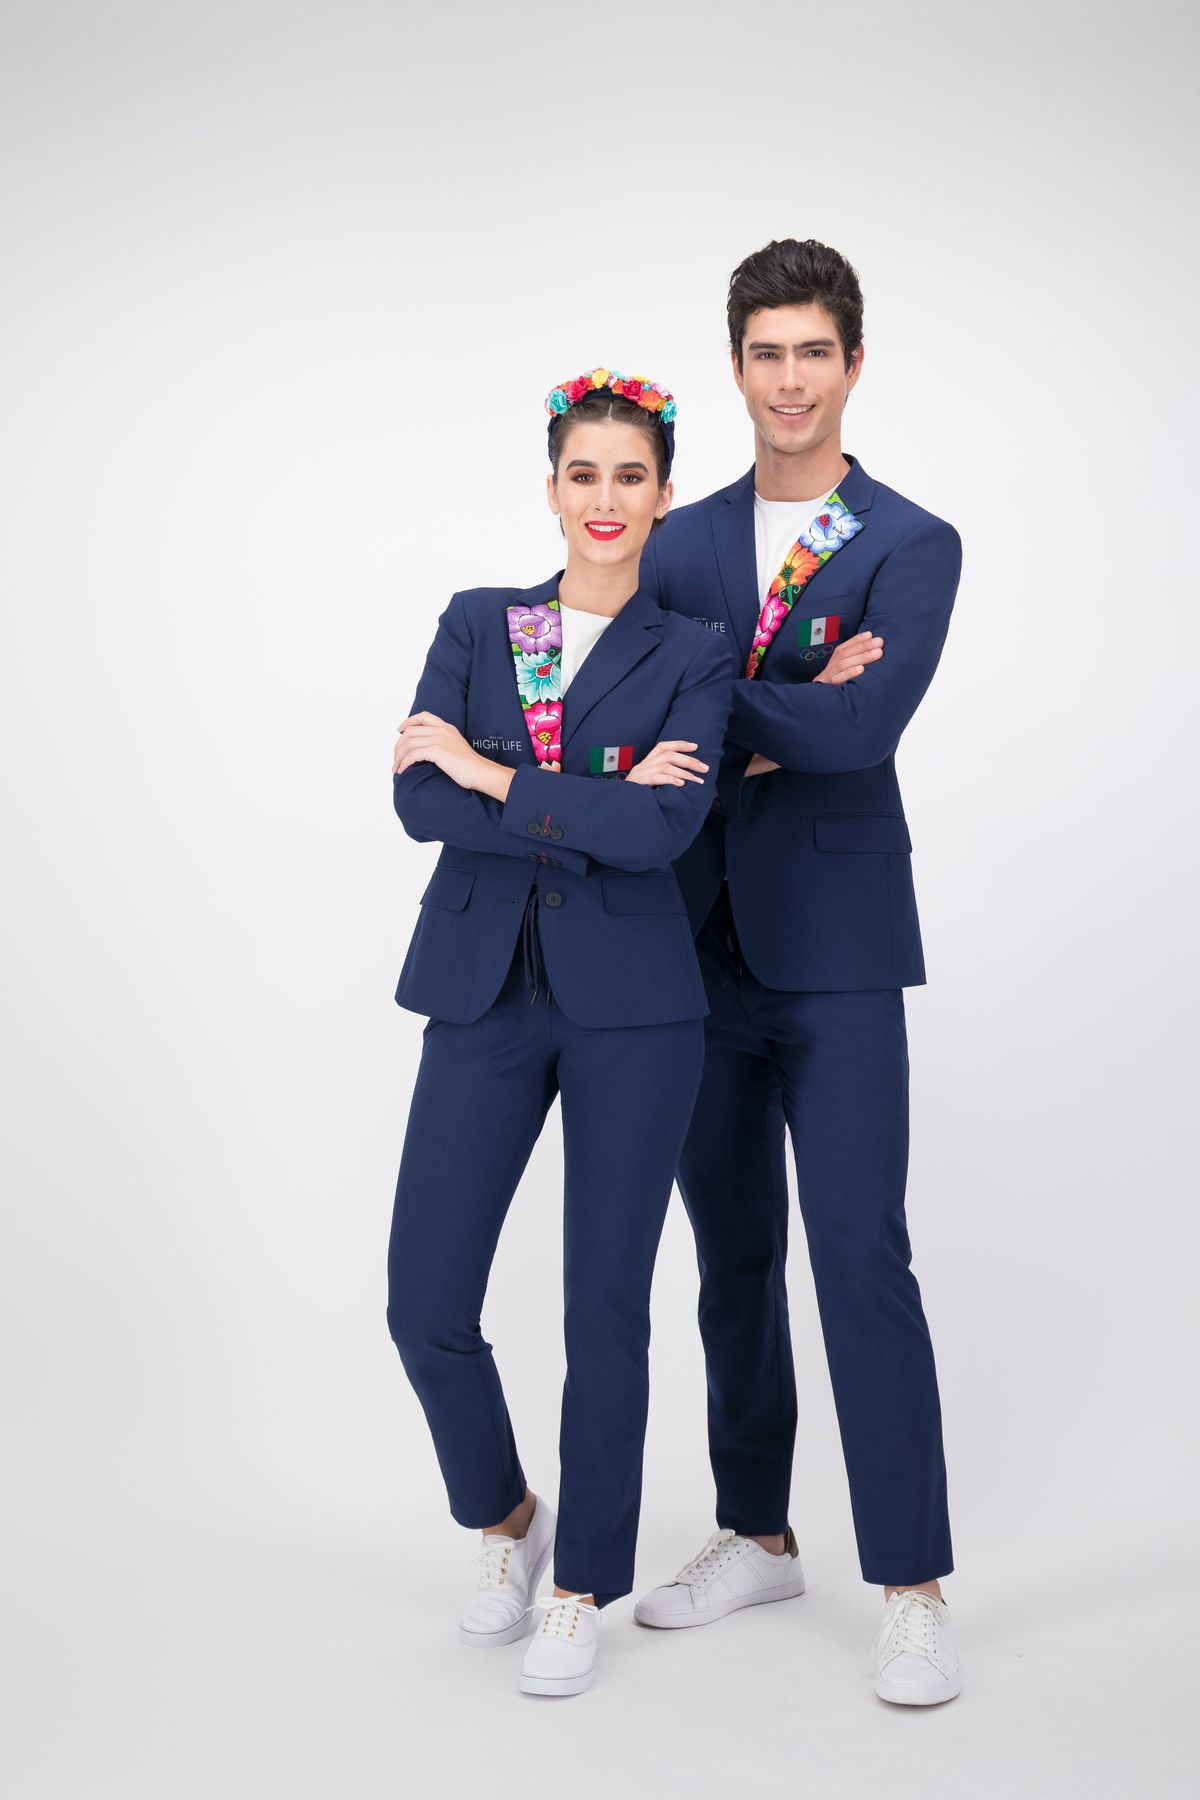 This image provided by High Life Mexico shows the opening ceremony outfits for team Mexico.